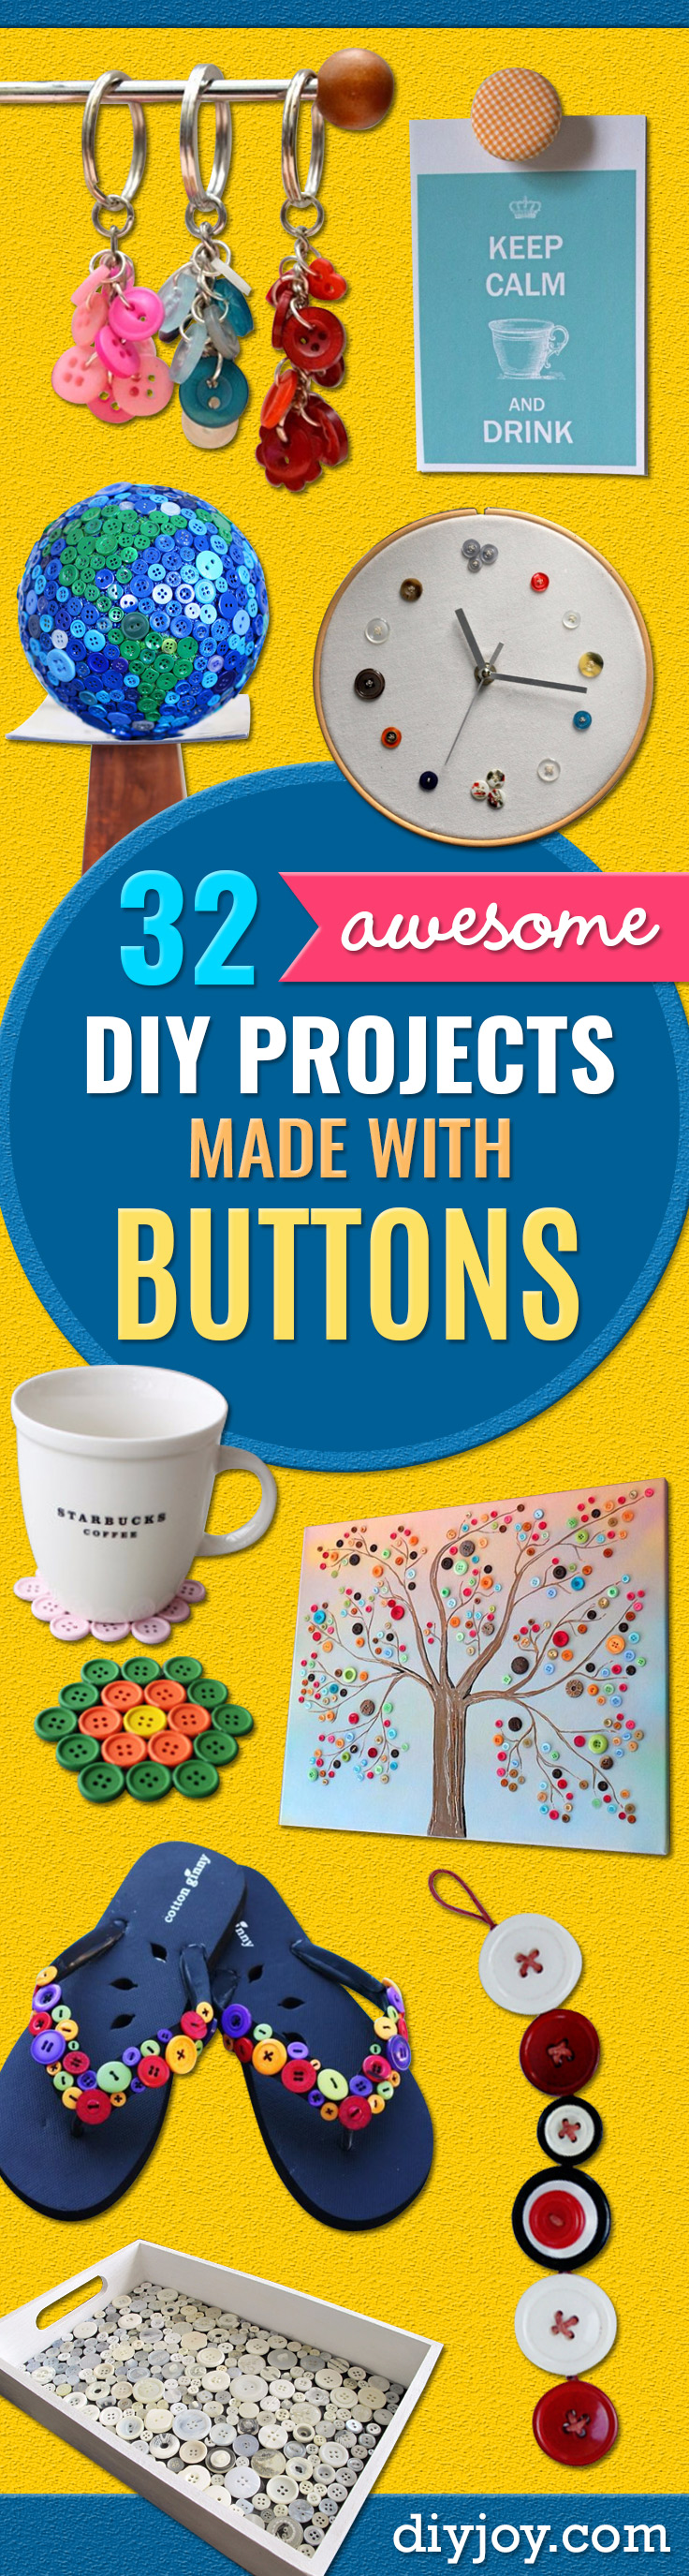 DIY Projects and Crafts Made With Buttons - Easy and Quick Projects You Can Make With Buttons - Cool and Creative Crafts, Sewing Ideas and Homemade Gifts for Women, Teens, Kids and Friends - Home Decor, Fashion and Cheap, Inexpensive Fun Things to Make on A Budget